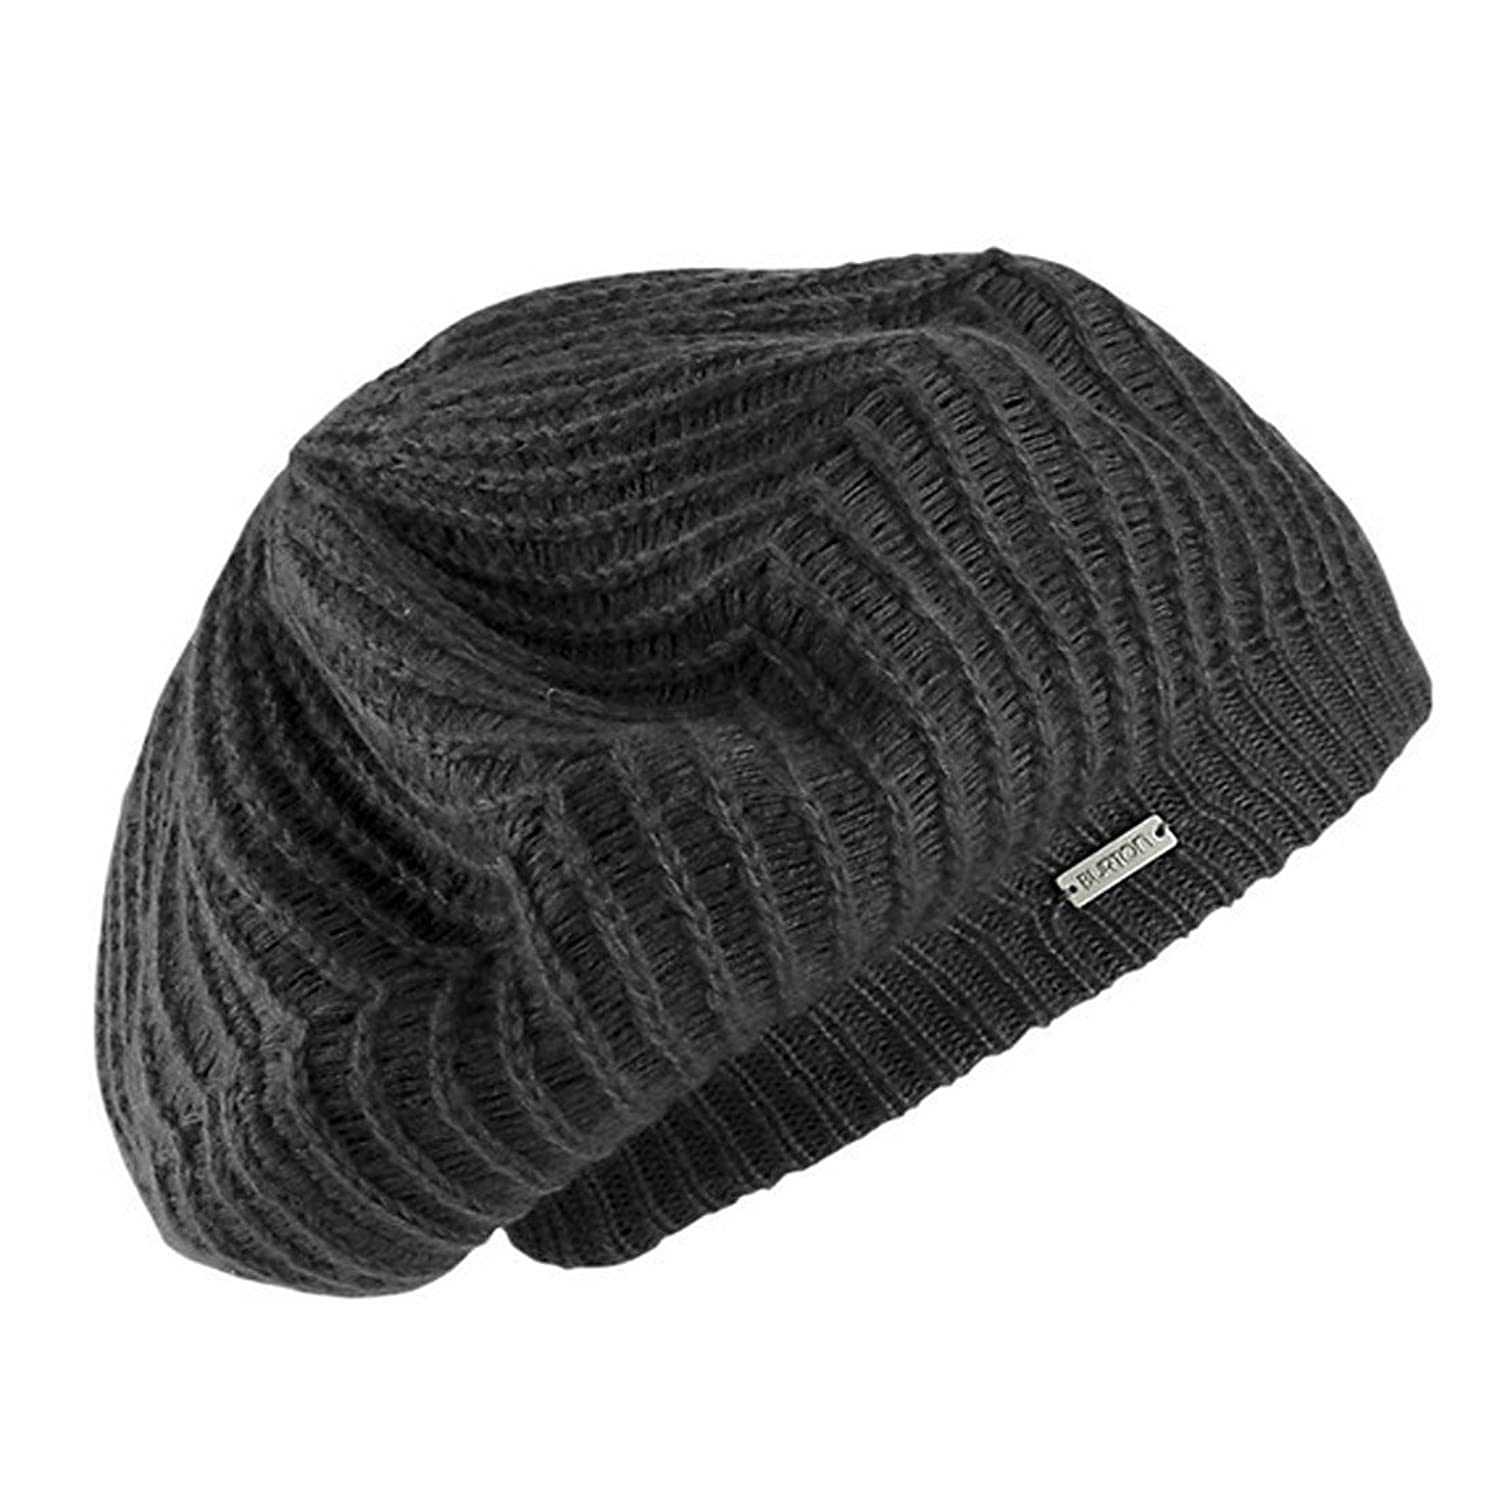 Burton Faux Pas Beanie - Women's Holbrook, One Size True Black